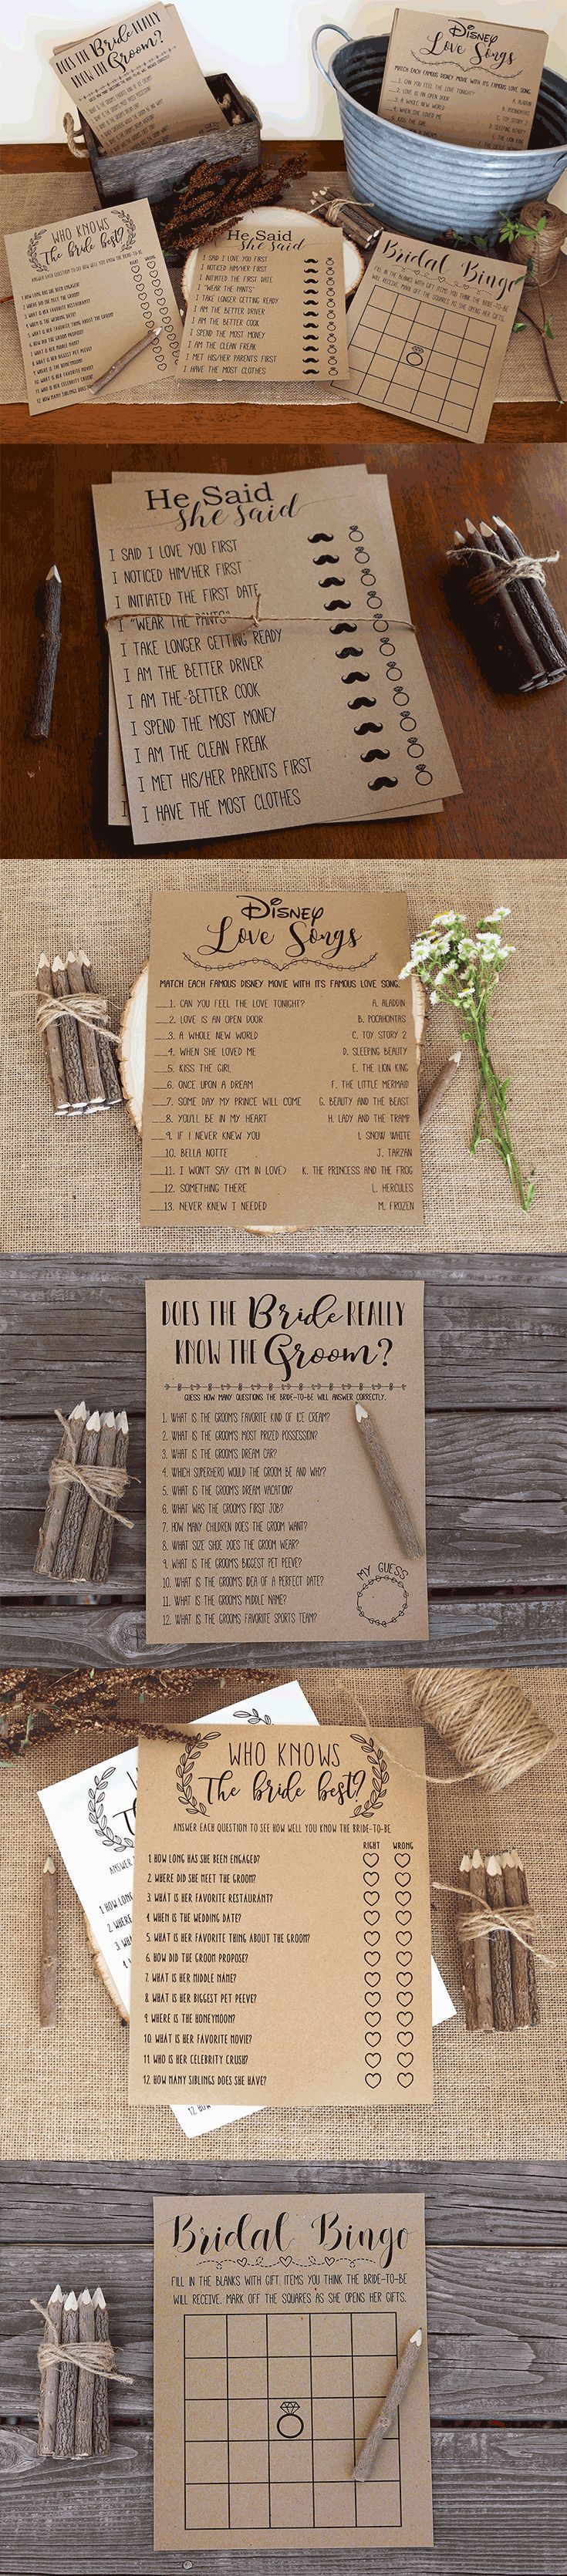 25 best ideas about couple question game on pinterest wedding games couple questions. Black Bedroom Furniture Sets. Home Design Ideas